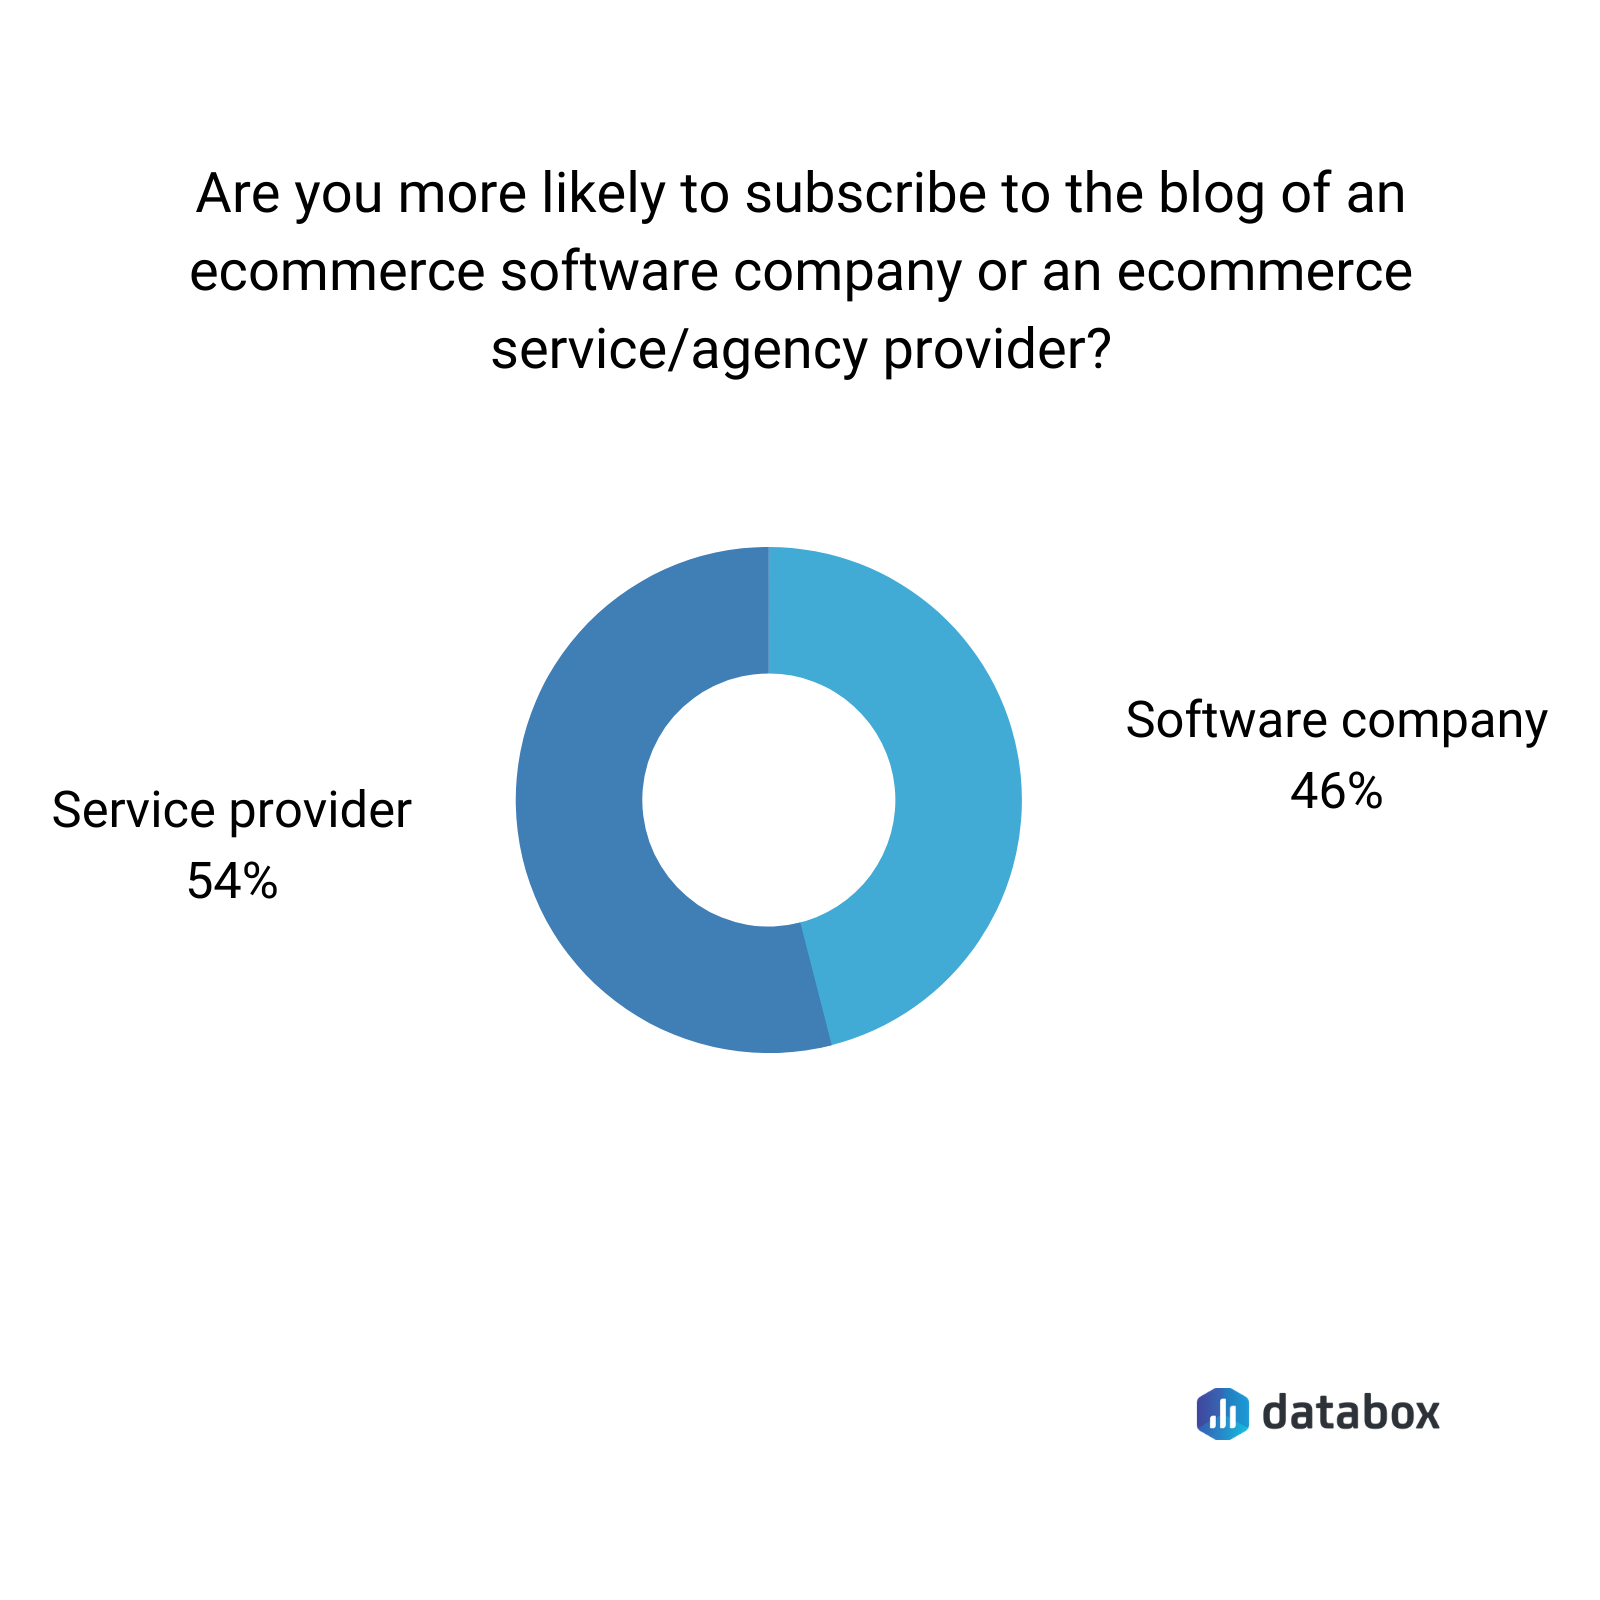 are you more likely to subscribe to the blog of an ecommerce software company or service/agency provider?